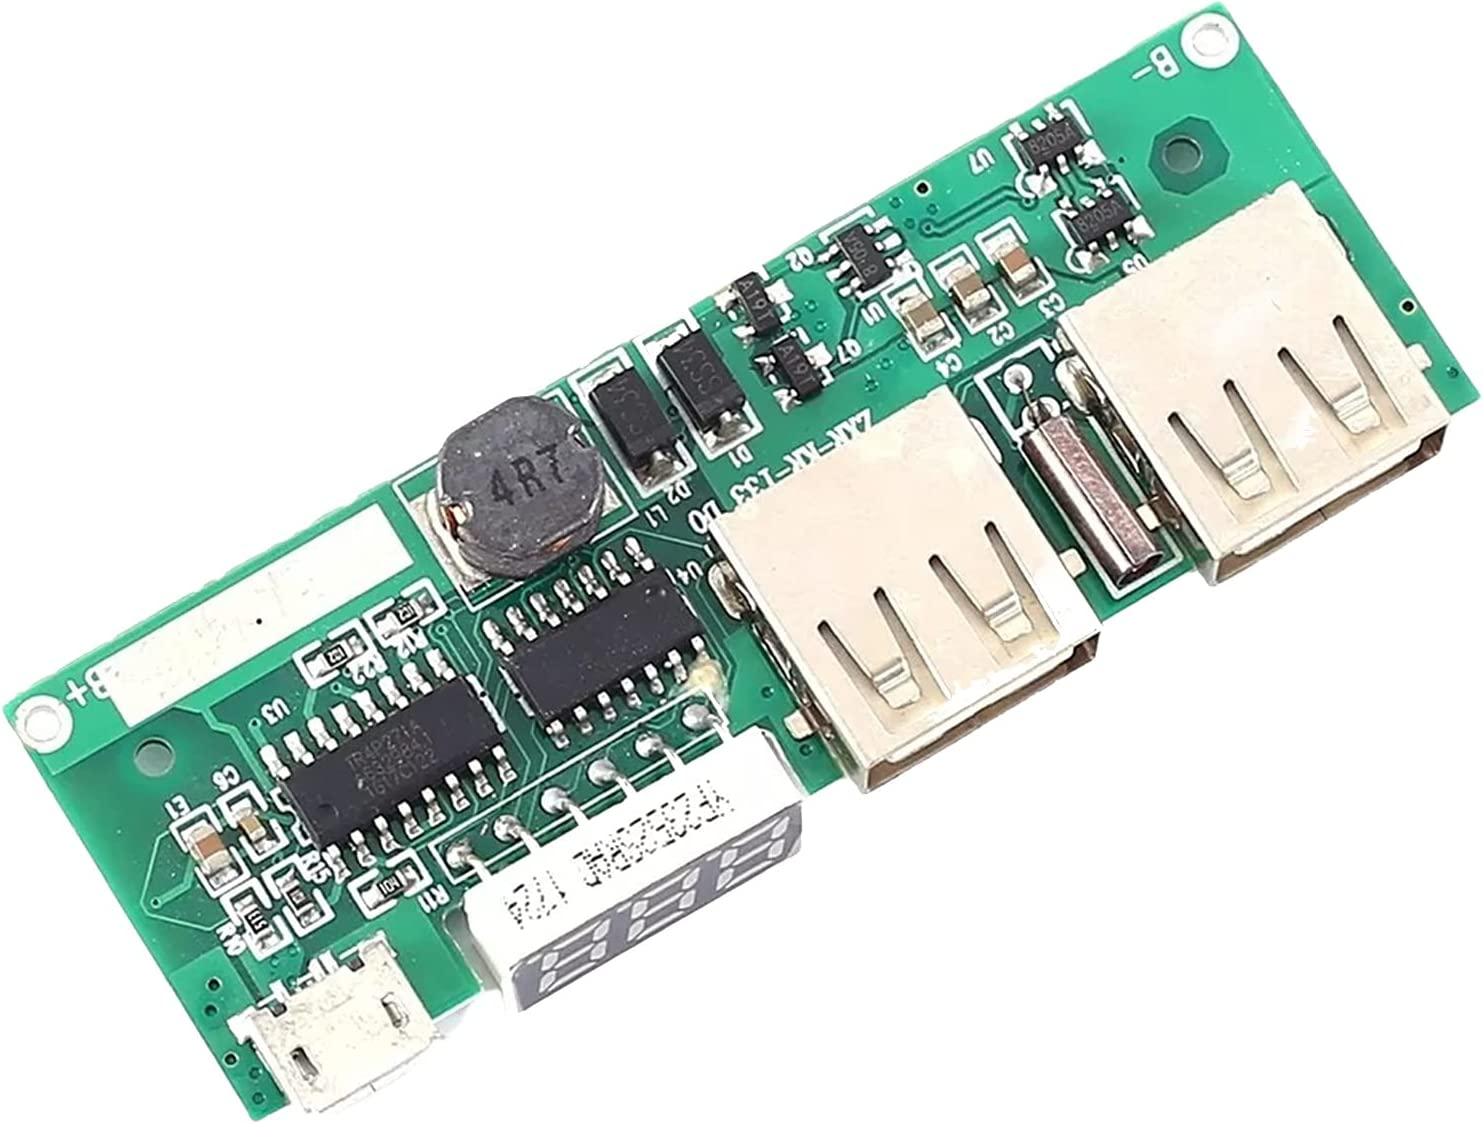 Austin Mall Discount is also underway DADAKEWIN Mobile Display Power Boost Vibration Module 5V 2A Swit